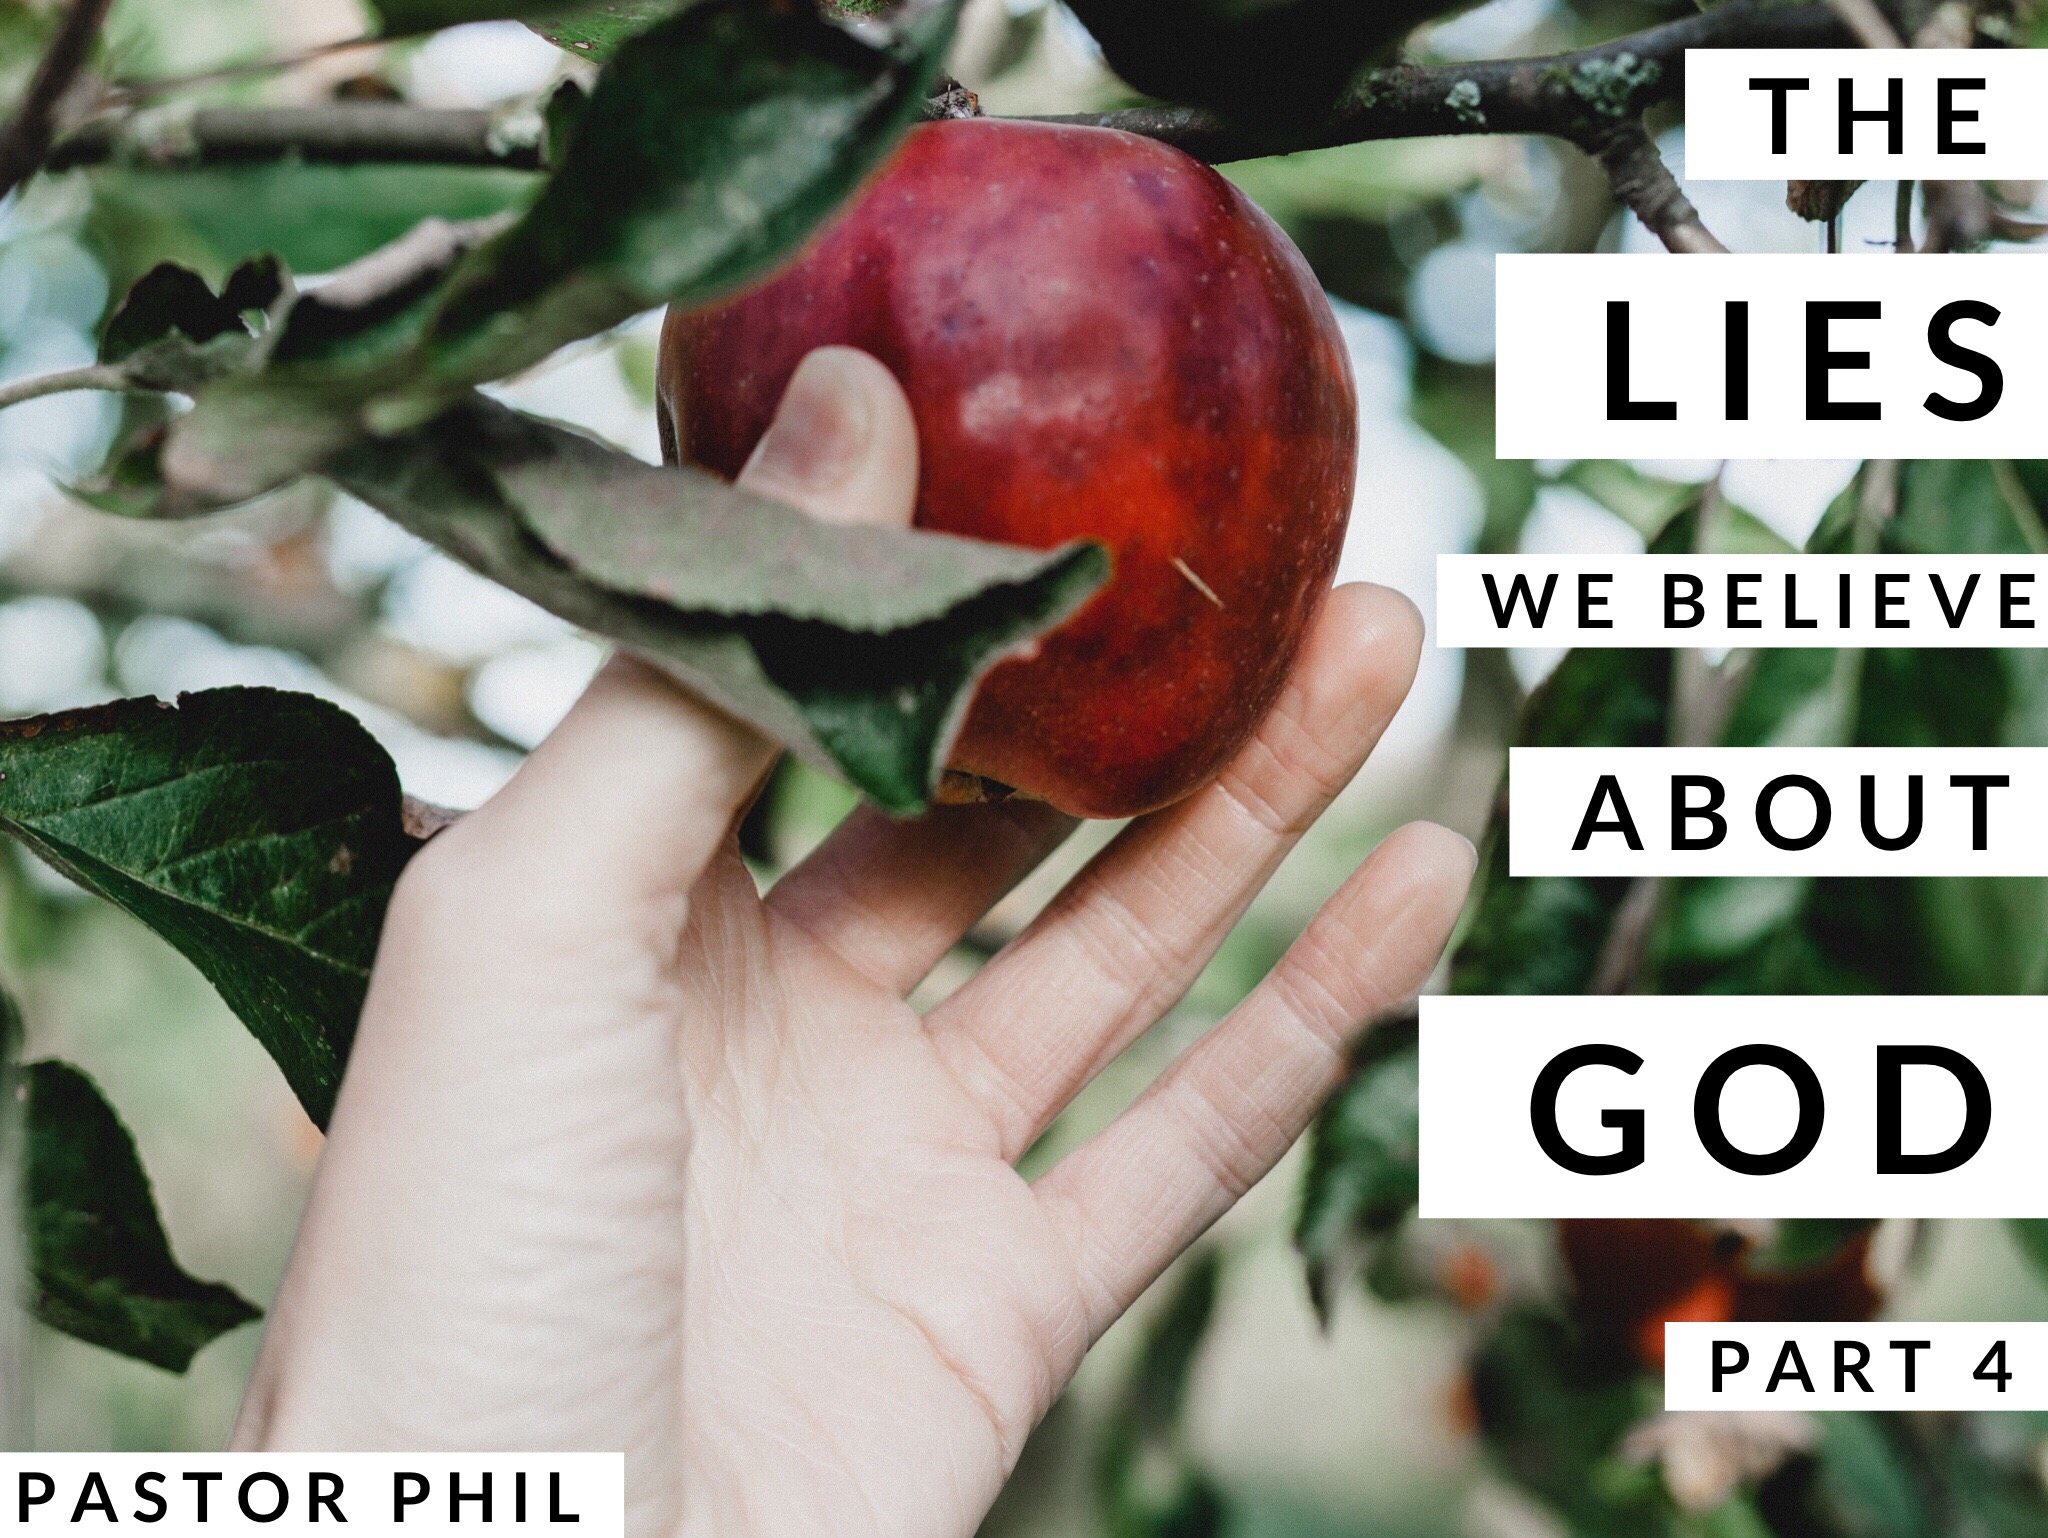 The Lies We Believe about God Pt 4